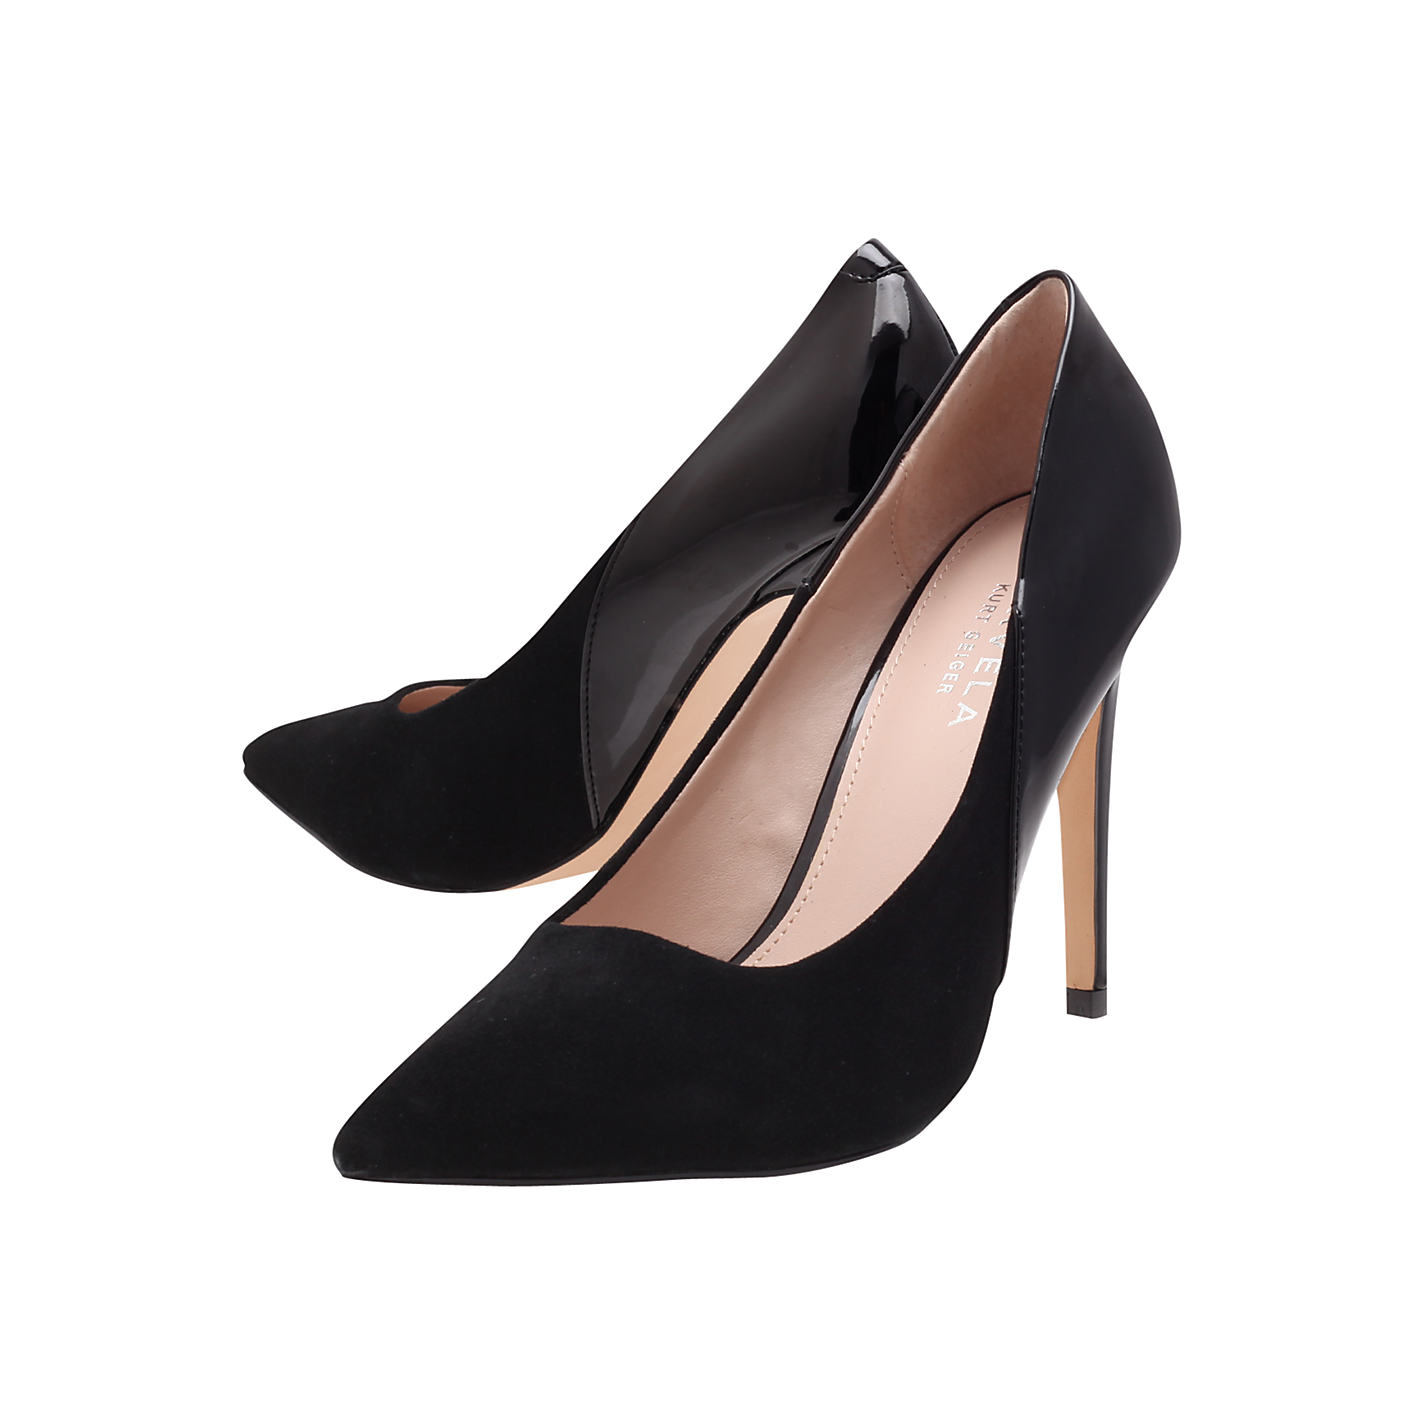 Buy carvela ash suede mix pointed toe stiletto heel court shoes, black